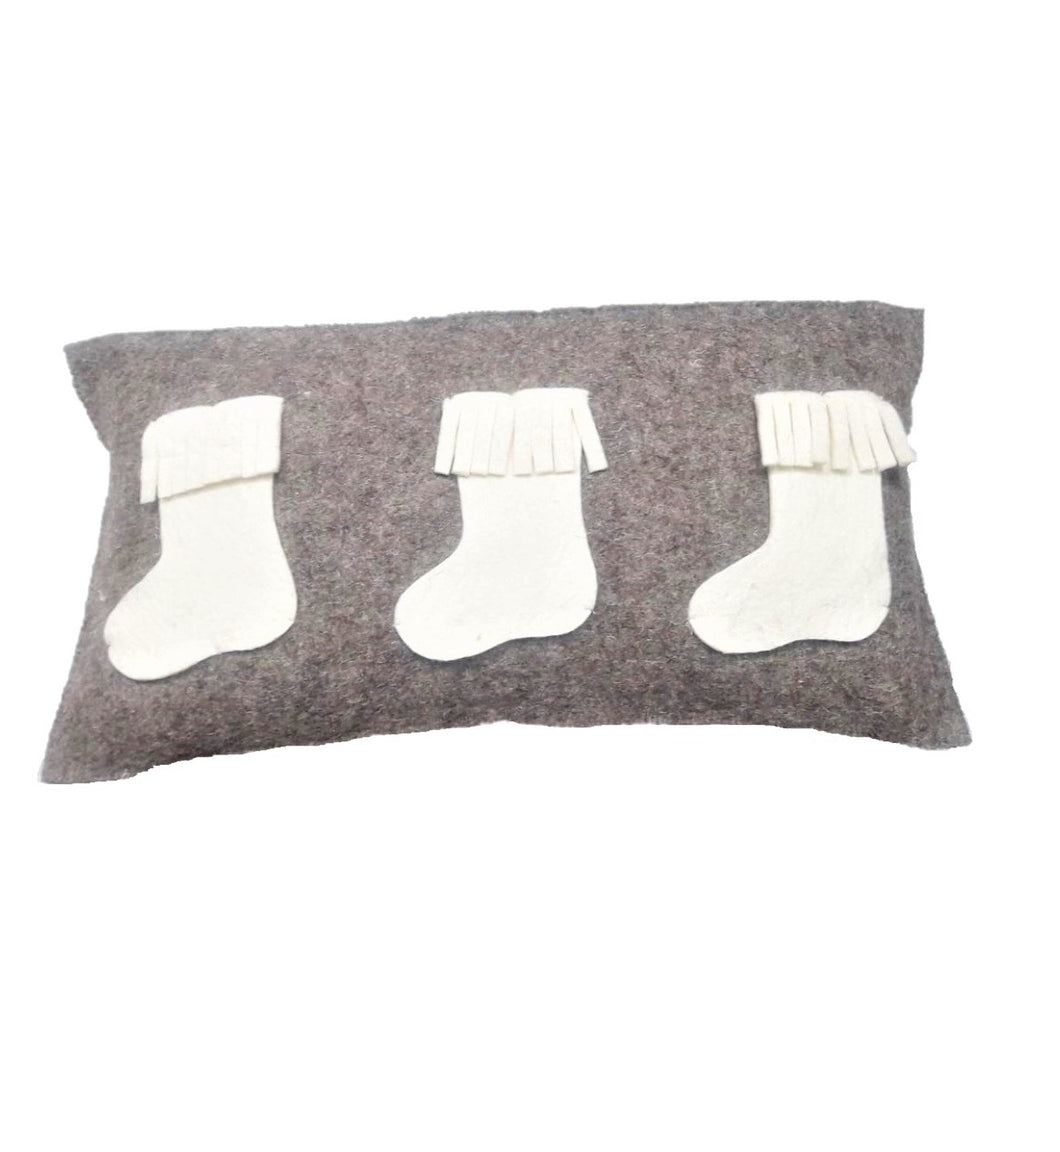 Hand Felted Wool Christmas Pillow  – White Stockings on Gray – 12x24""